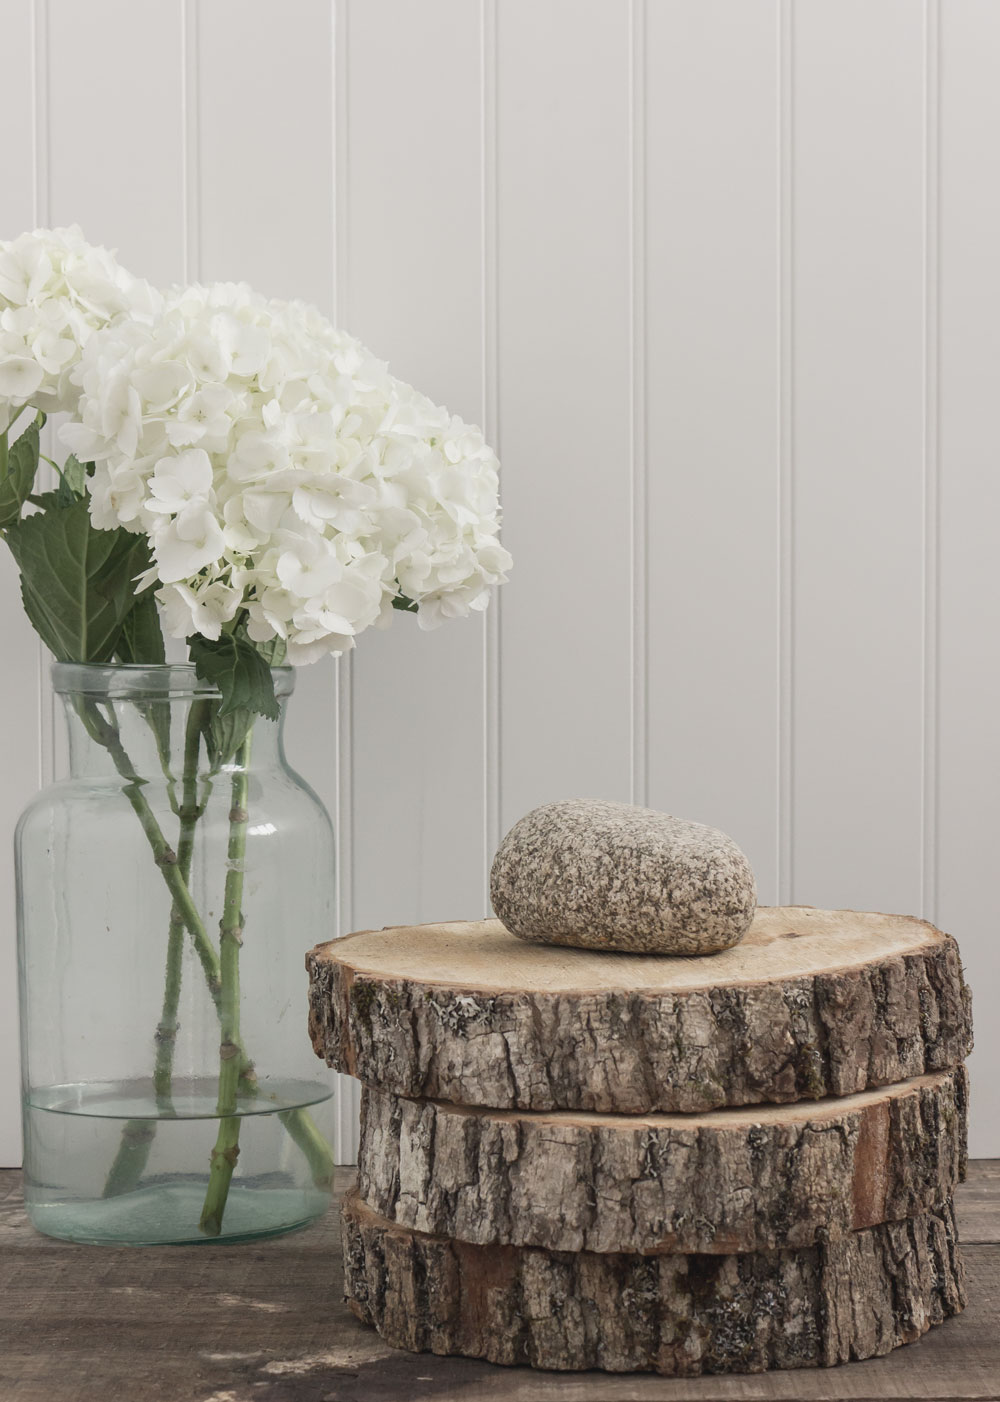 Rock on: how to use rocks and stones for decorating at home